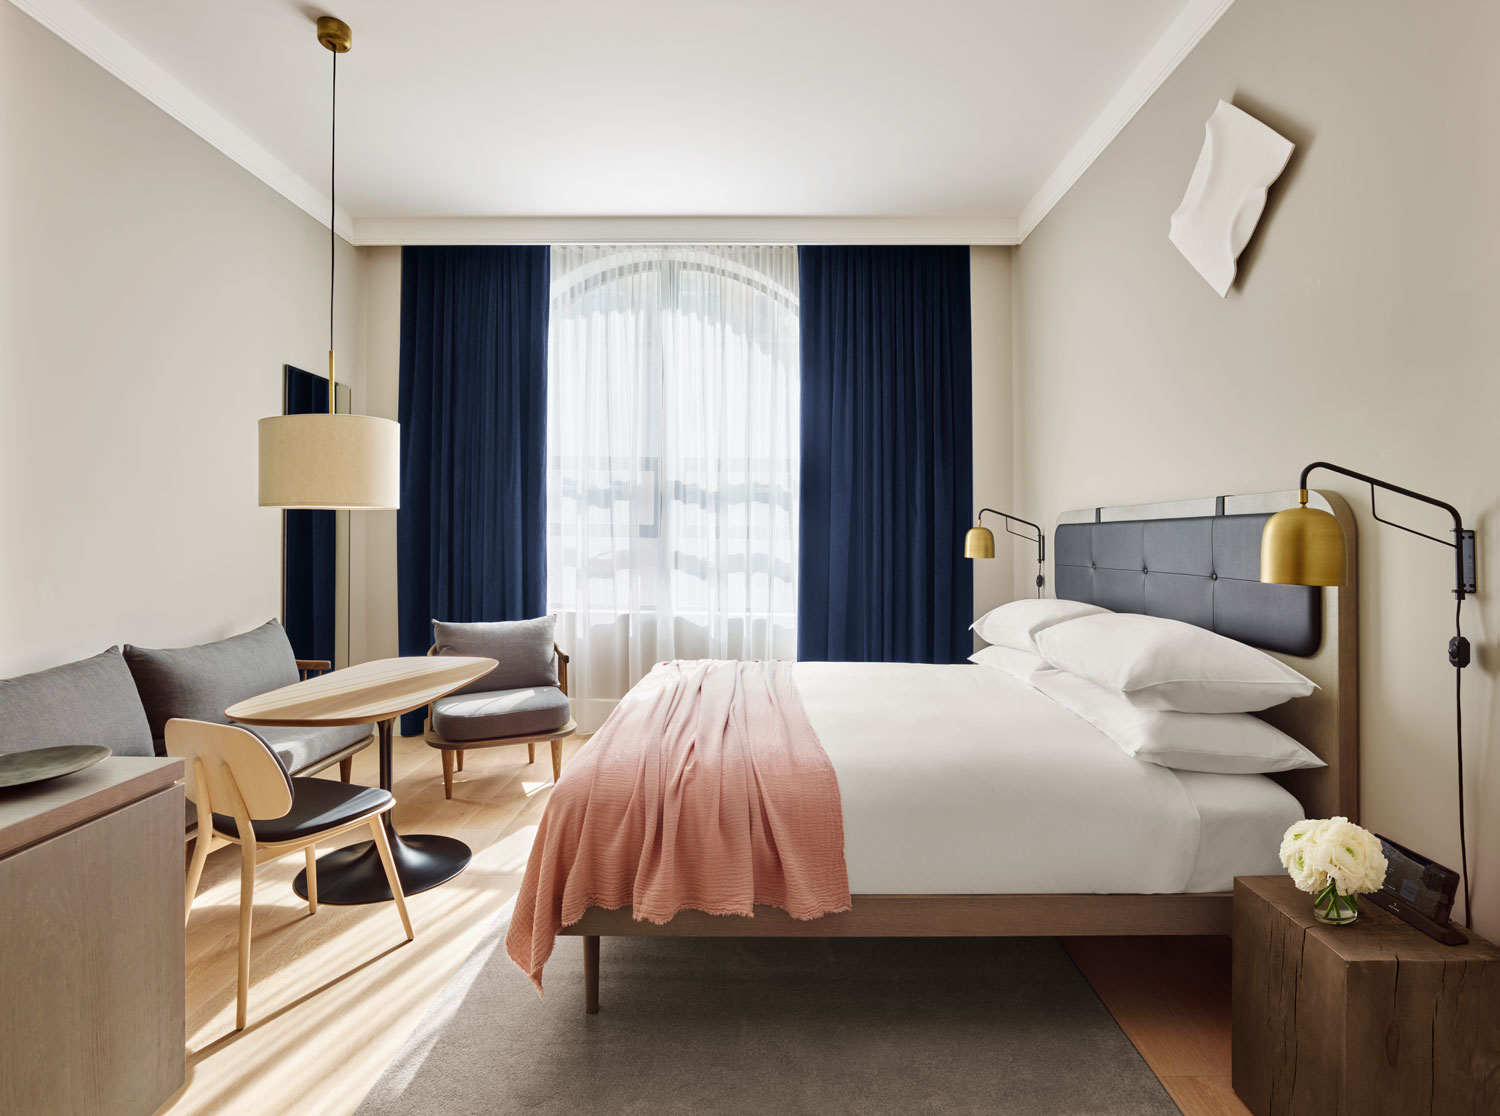 The basics of a good hotel room design   Interior Design Explained Double hotel room design